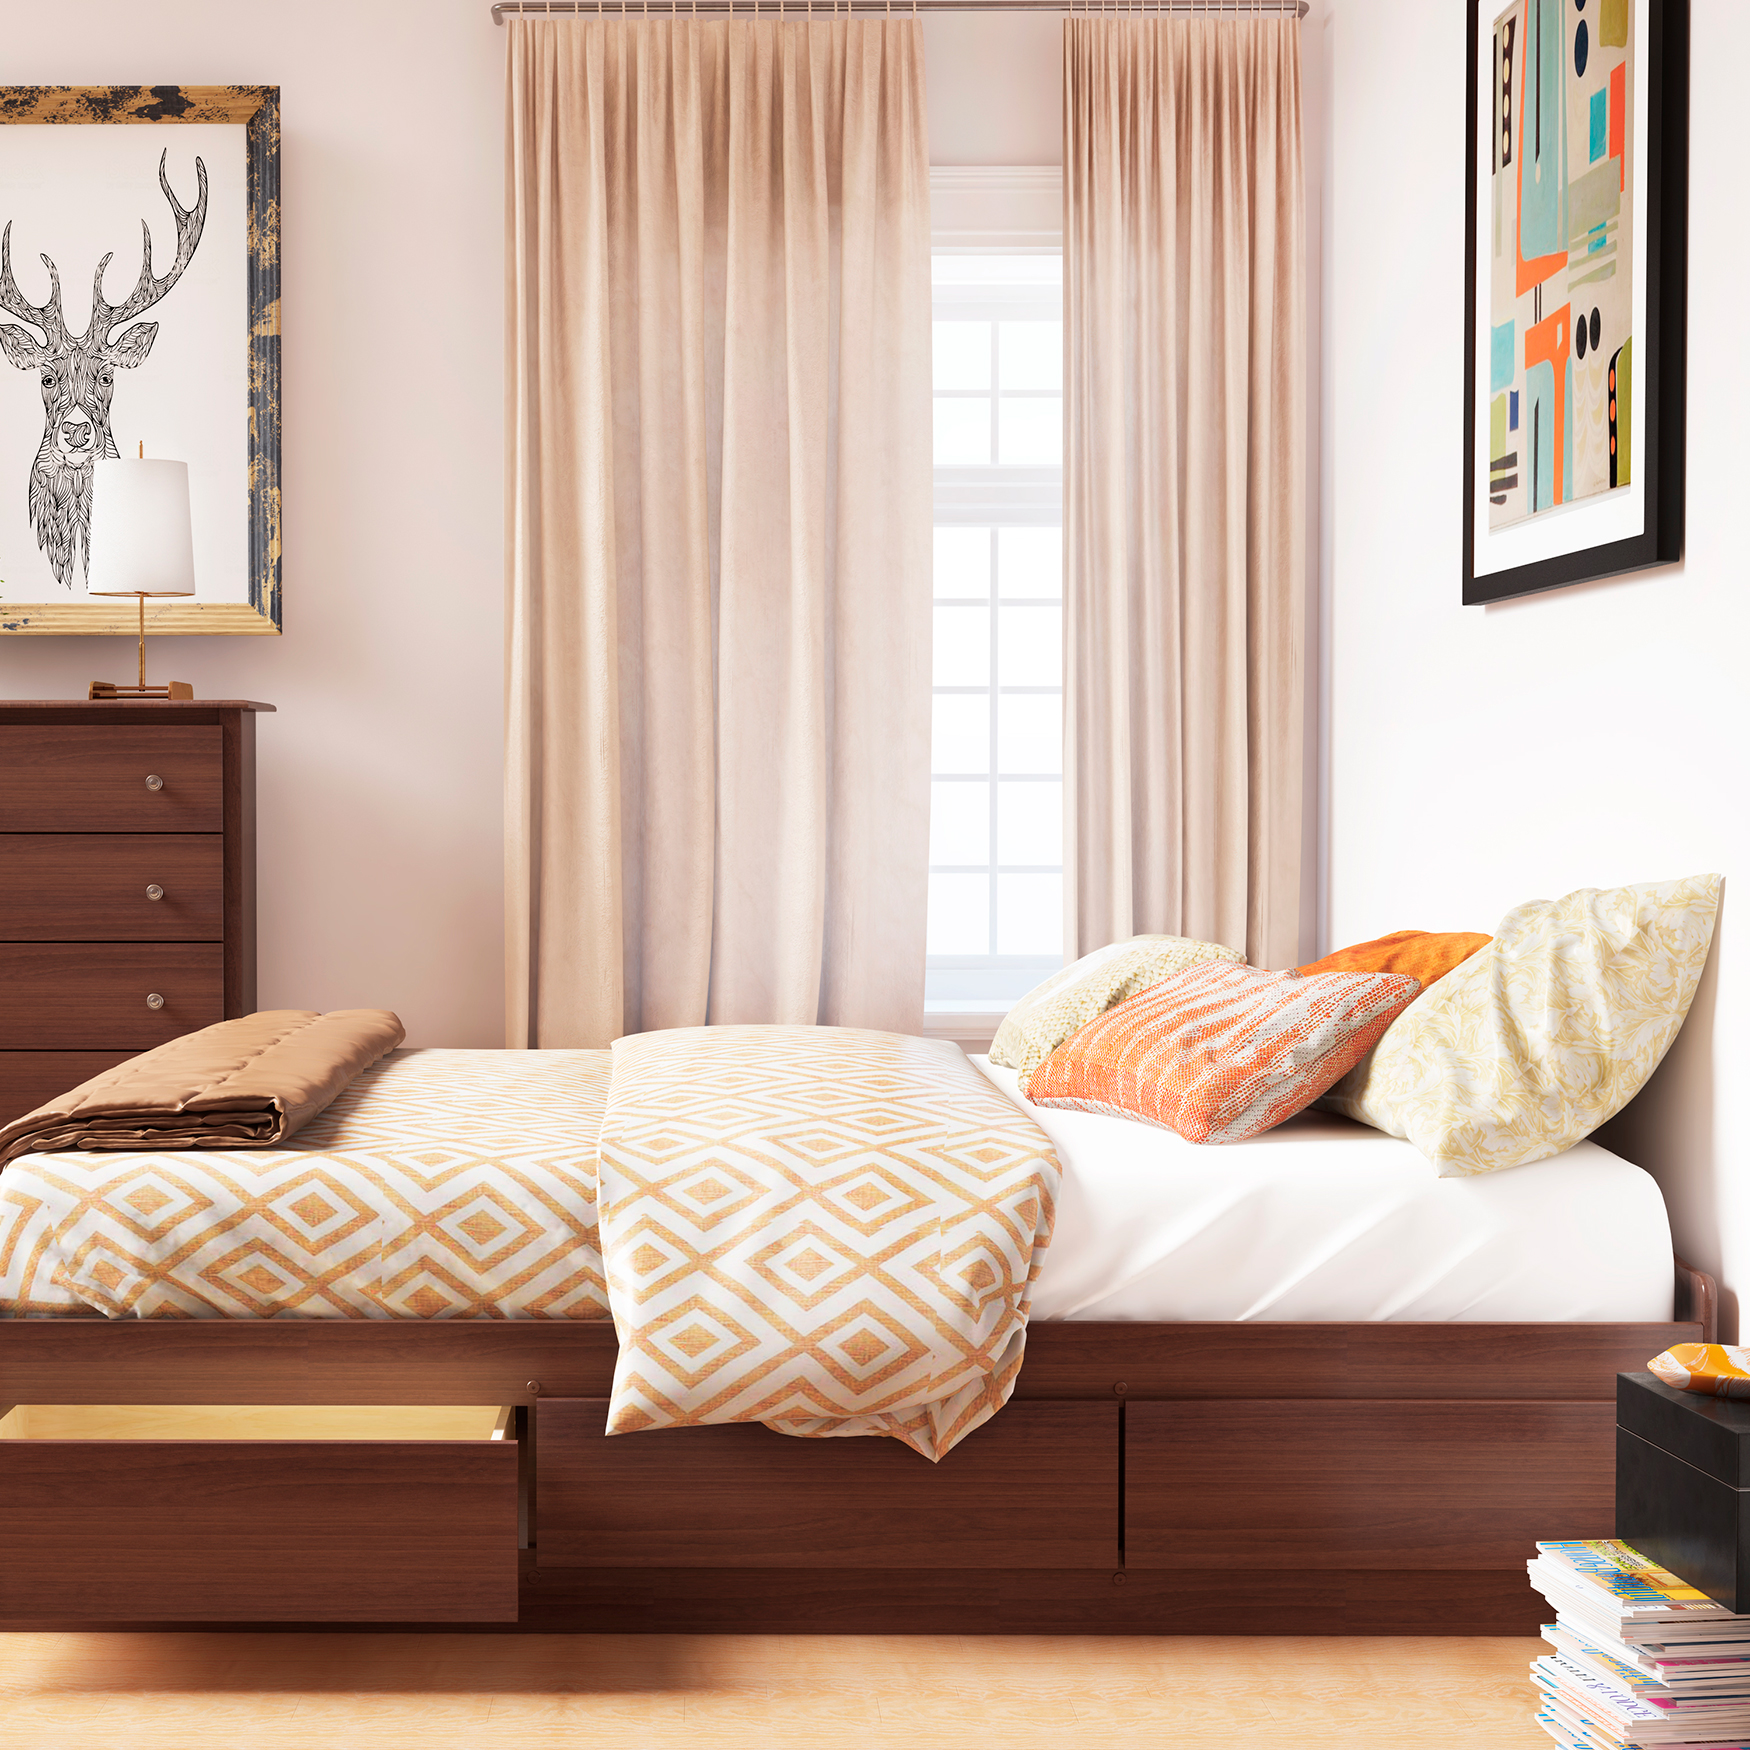 Queen Mate's Platform Storage Bed with 6 Drawers,